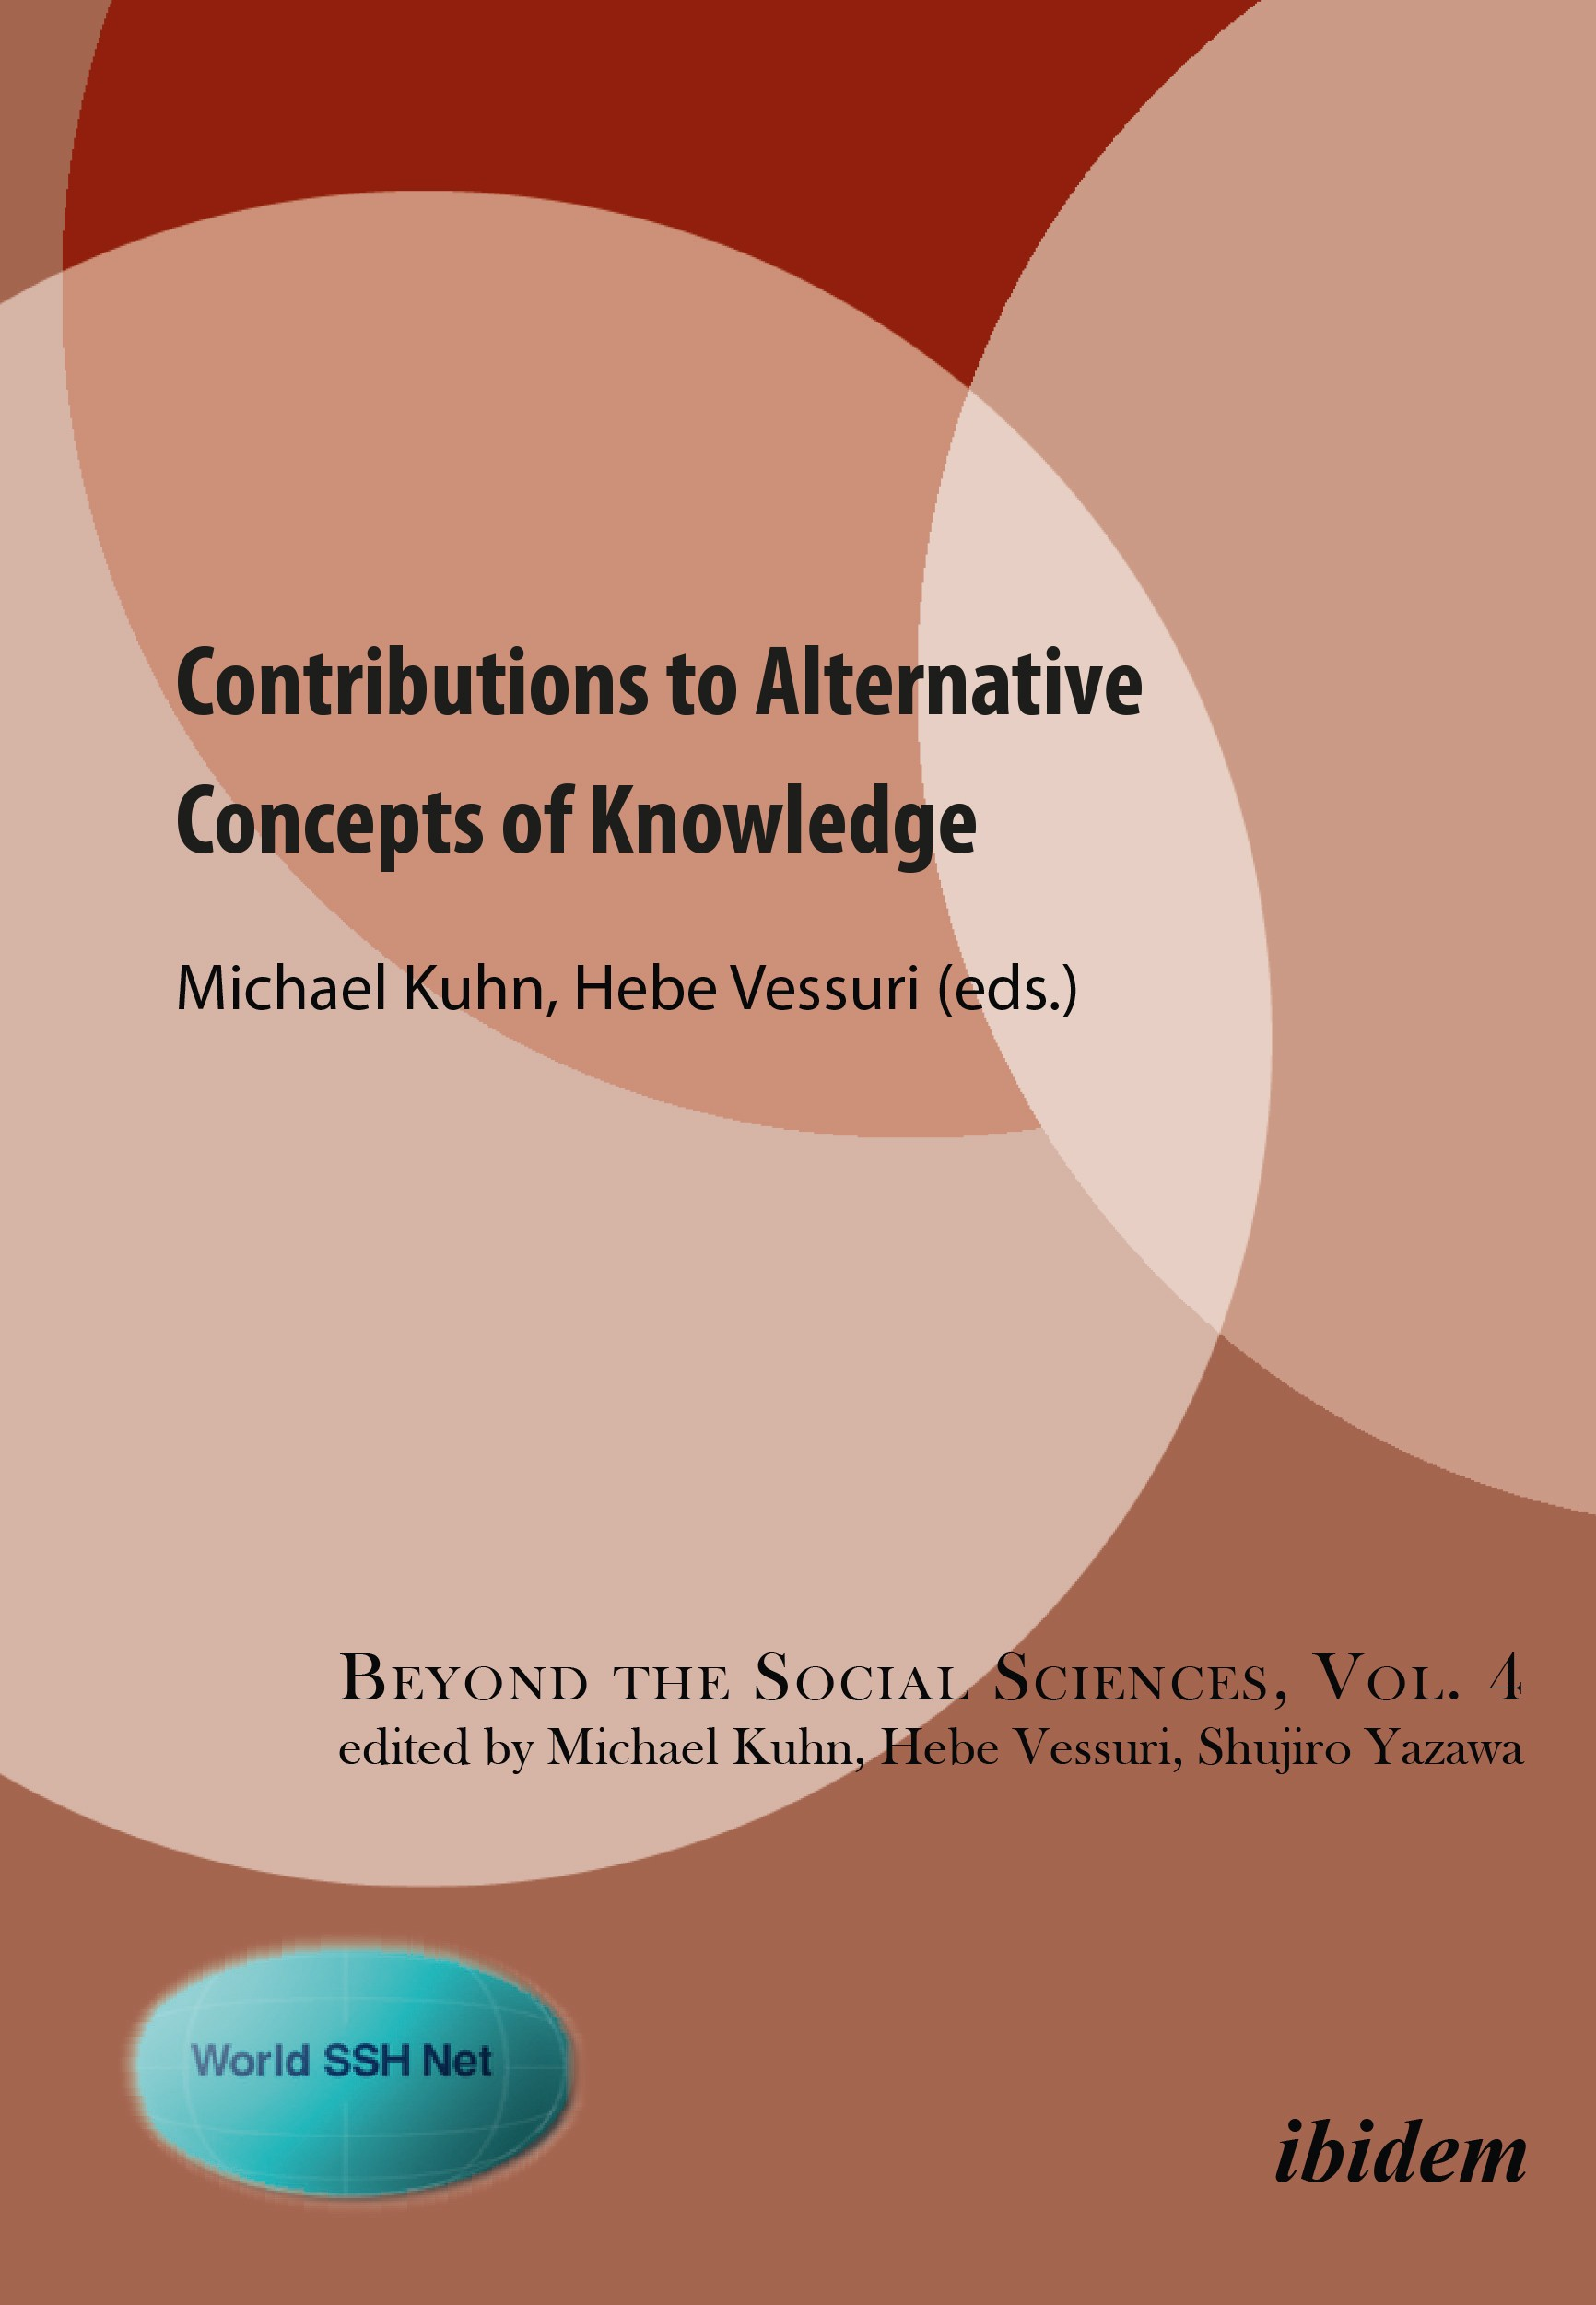 Contributions to Alternative Concepts of Knowledge